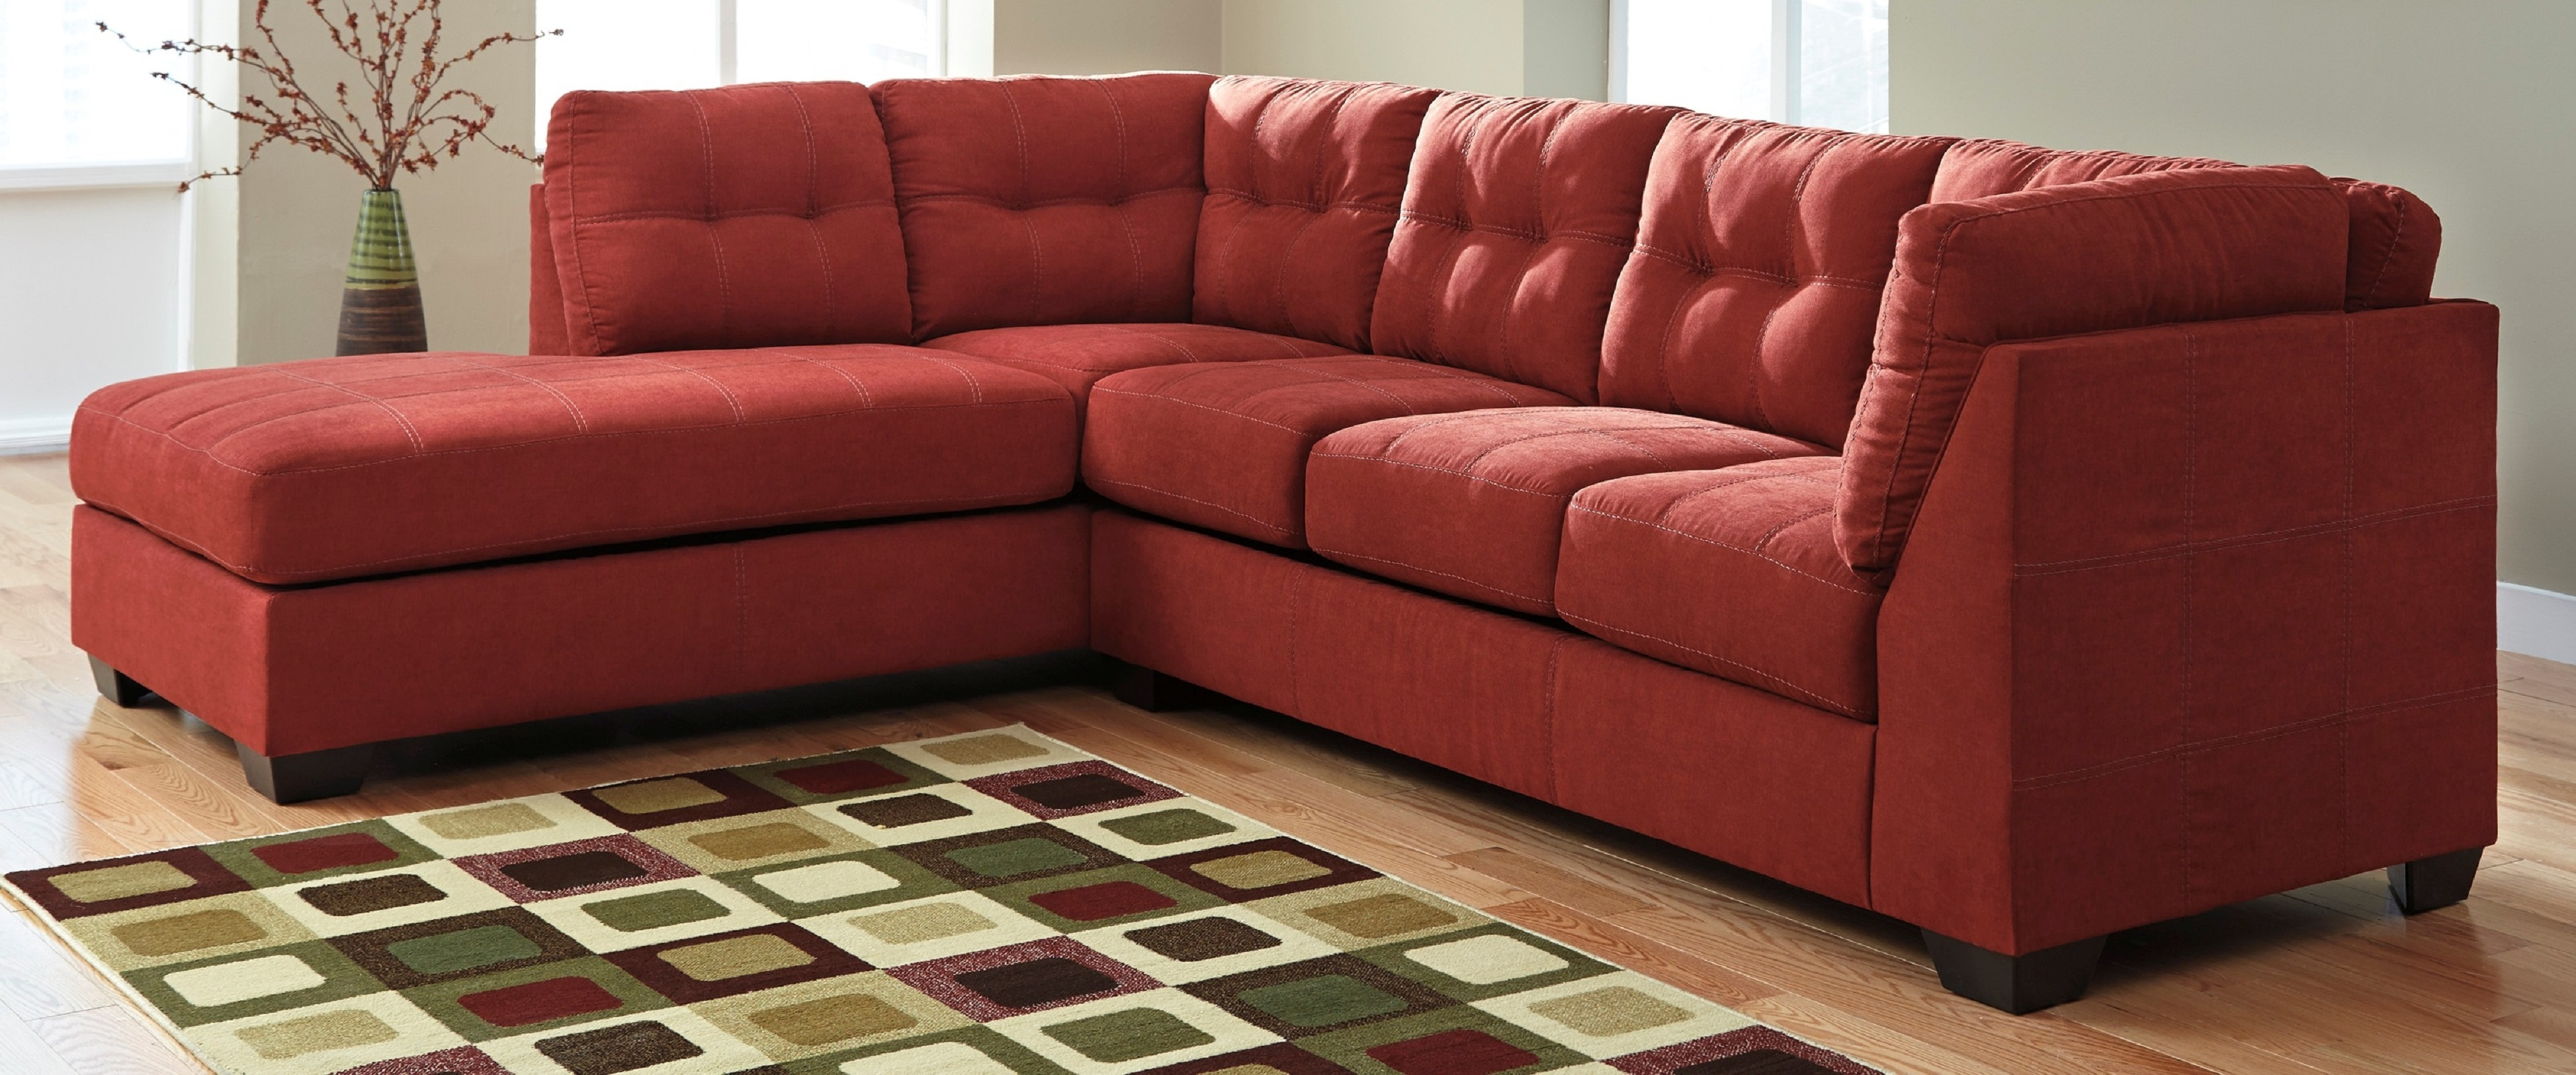 Maier 2 pc Sectional